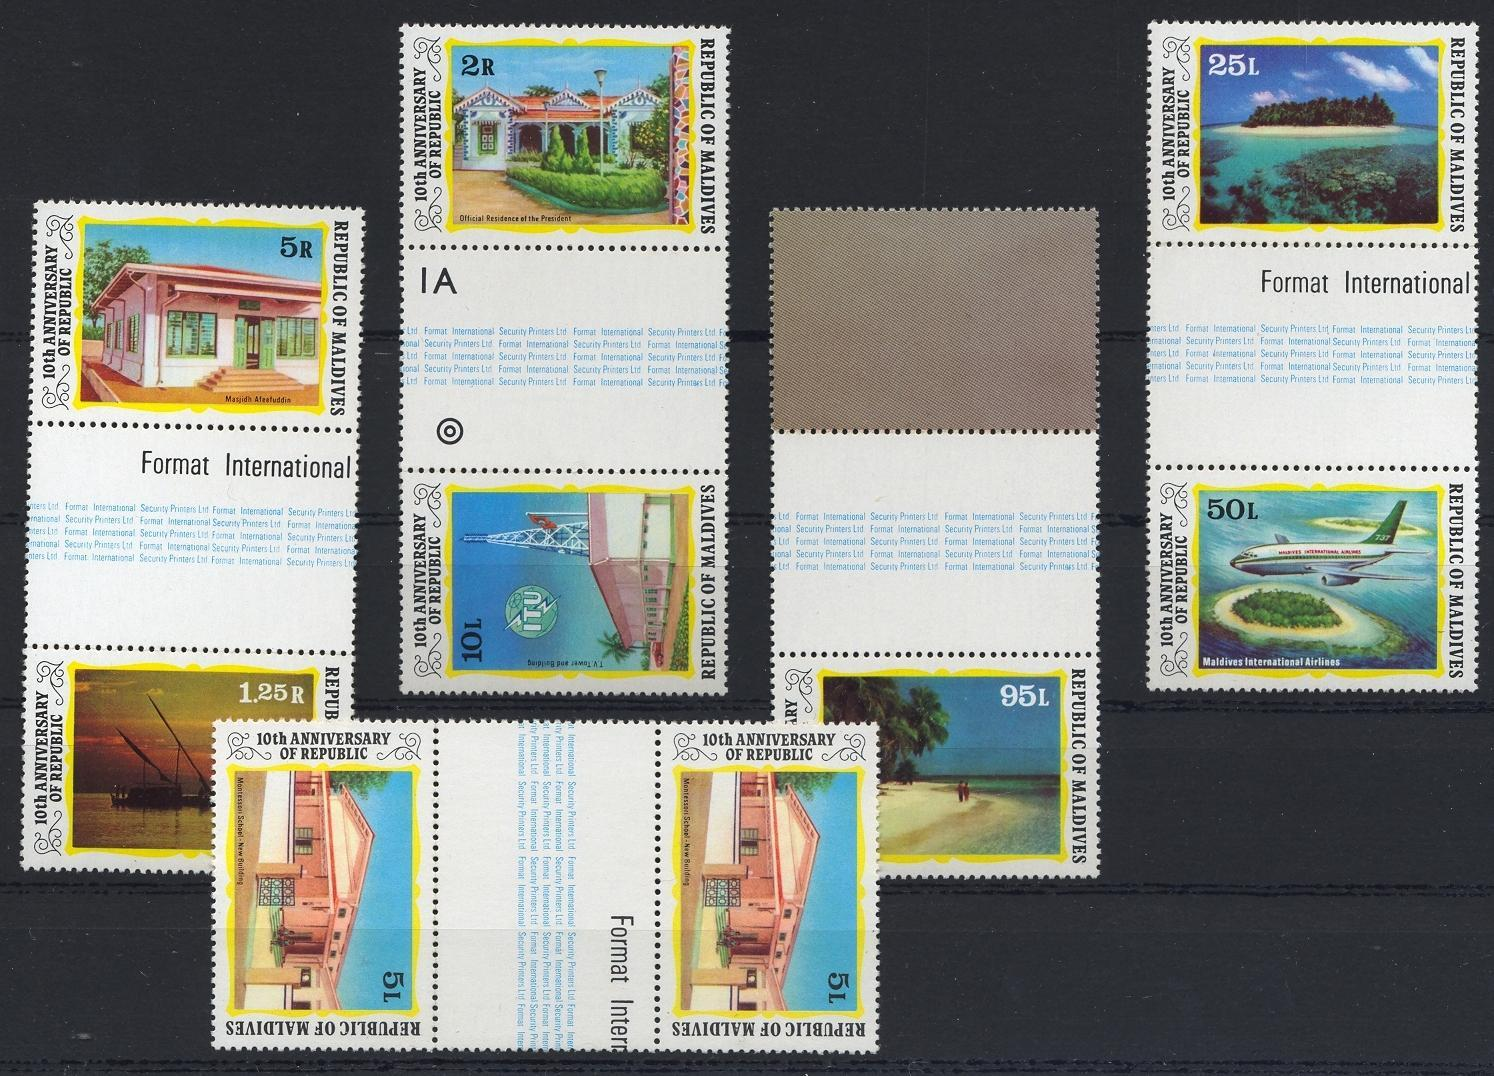 Stamps with Aircraft, Ship, Buildings from Maldives (image for product #032468)